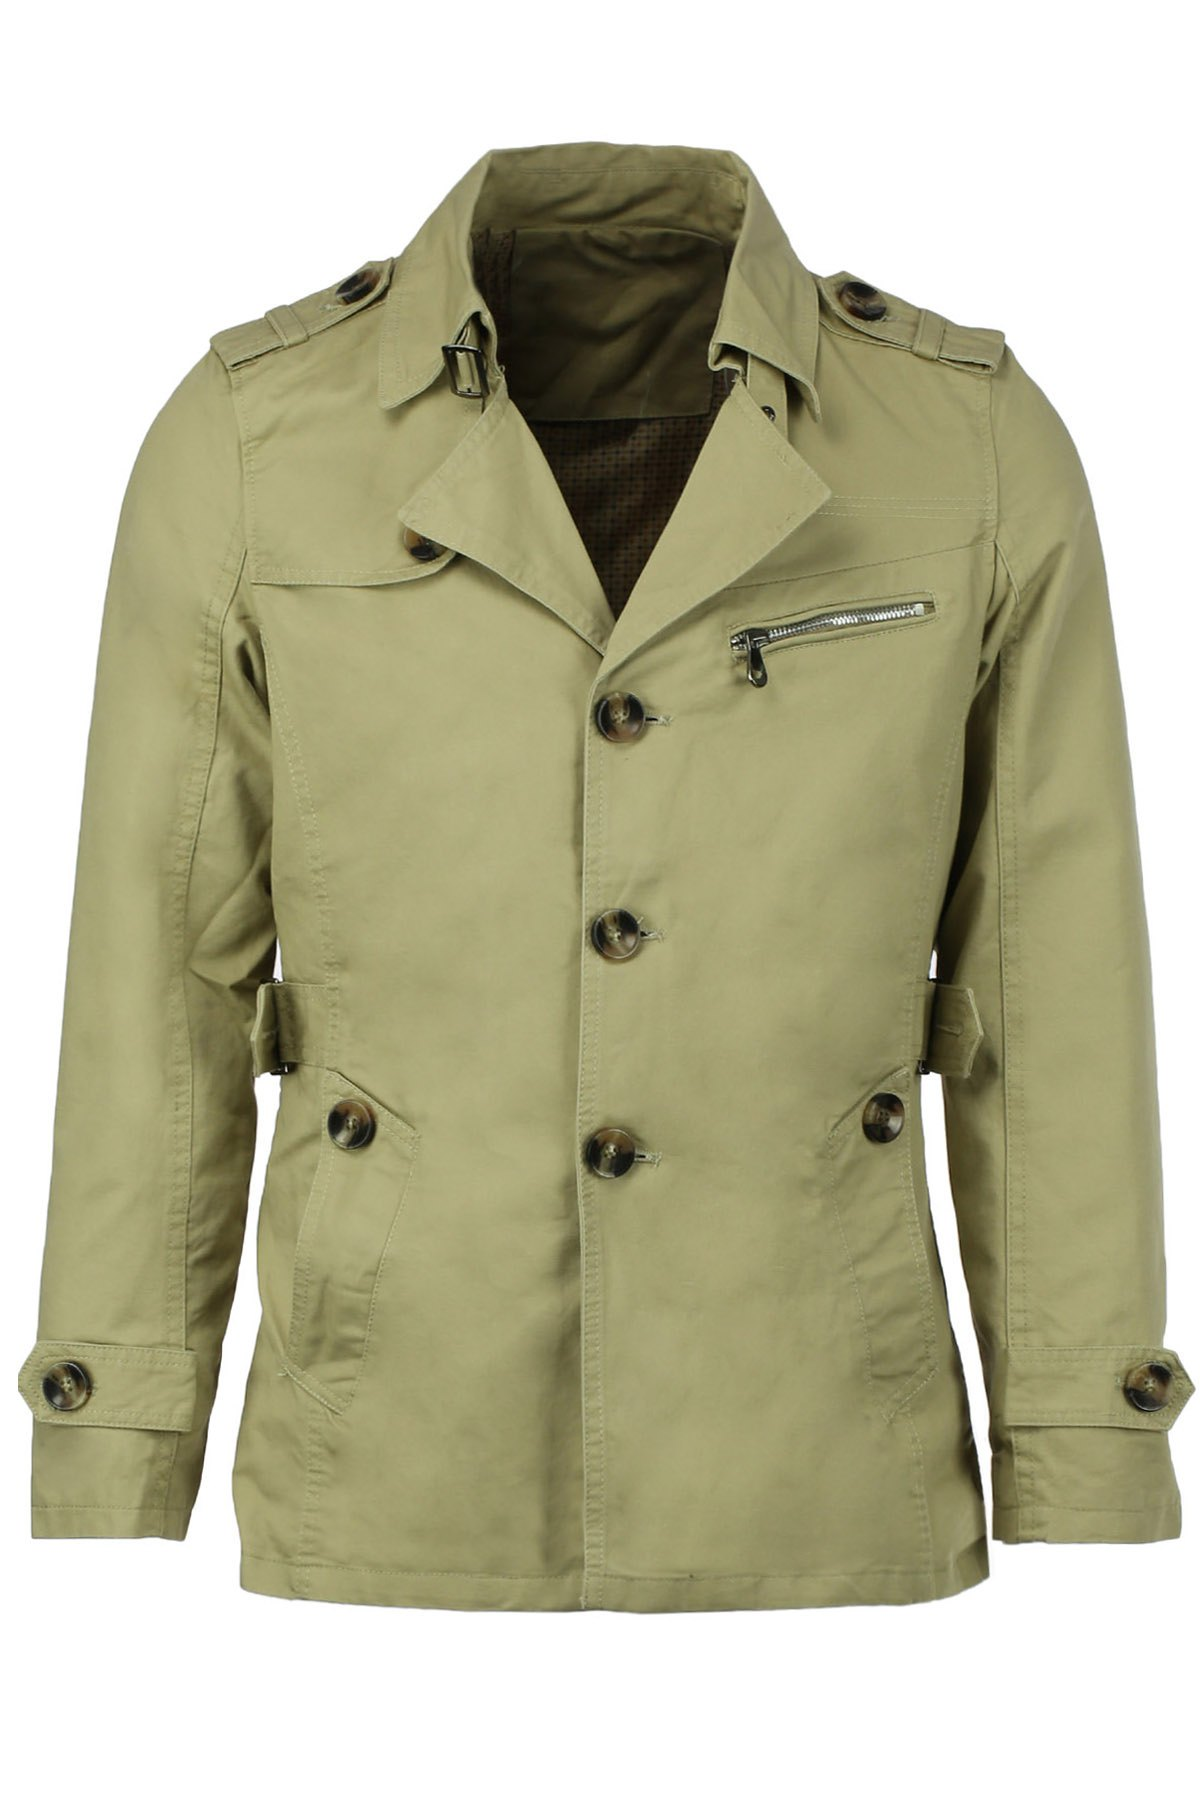 Turn-Down Collar Epaulet Single Breasted Long Sleeve Mens Trench CoatMEN<br><br>Size: 2XL; Color: LIGHT KHAKI; Clothes Type: Trench; Style: Fashion; Material: Cotton,Polyester; Collar: Turn-down Collar; Shirt Length: Long; Sleeve Length: Long Sleeves; Season: Fall,Winter; Weight: 0.850kg; Package Contents: 1 x Coat;